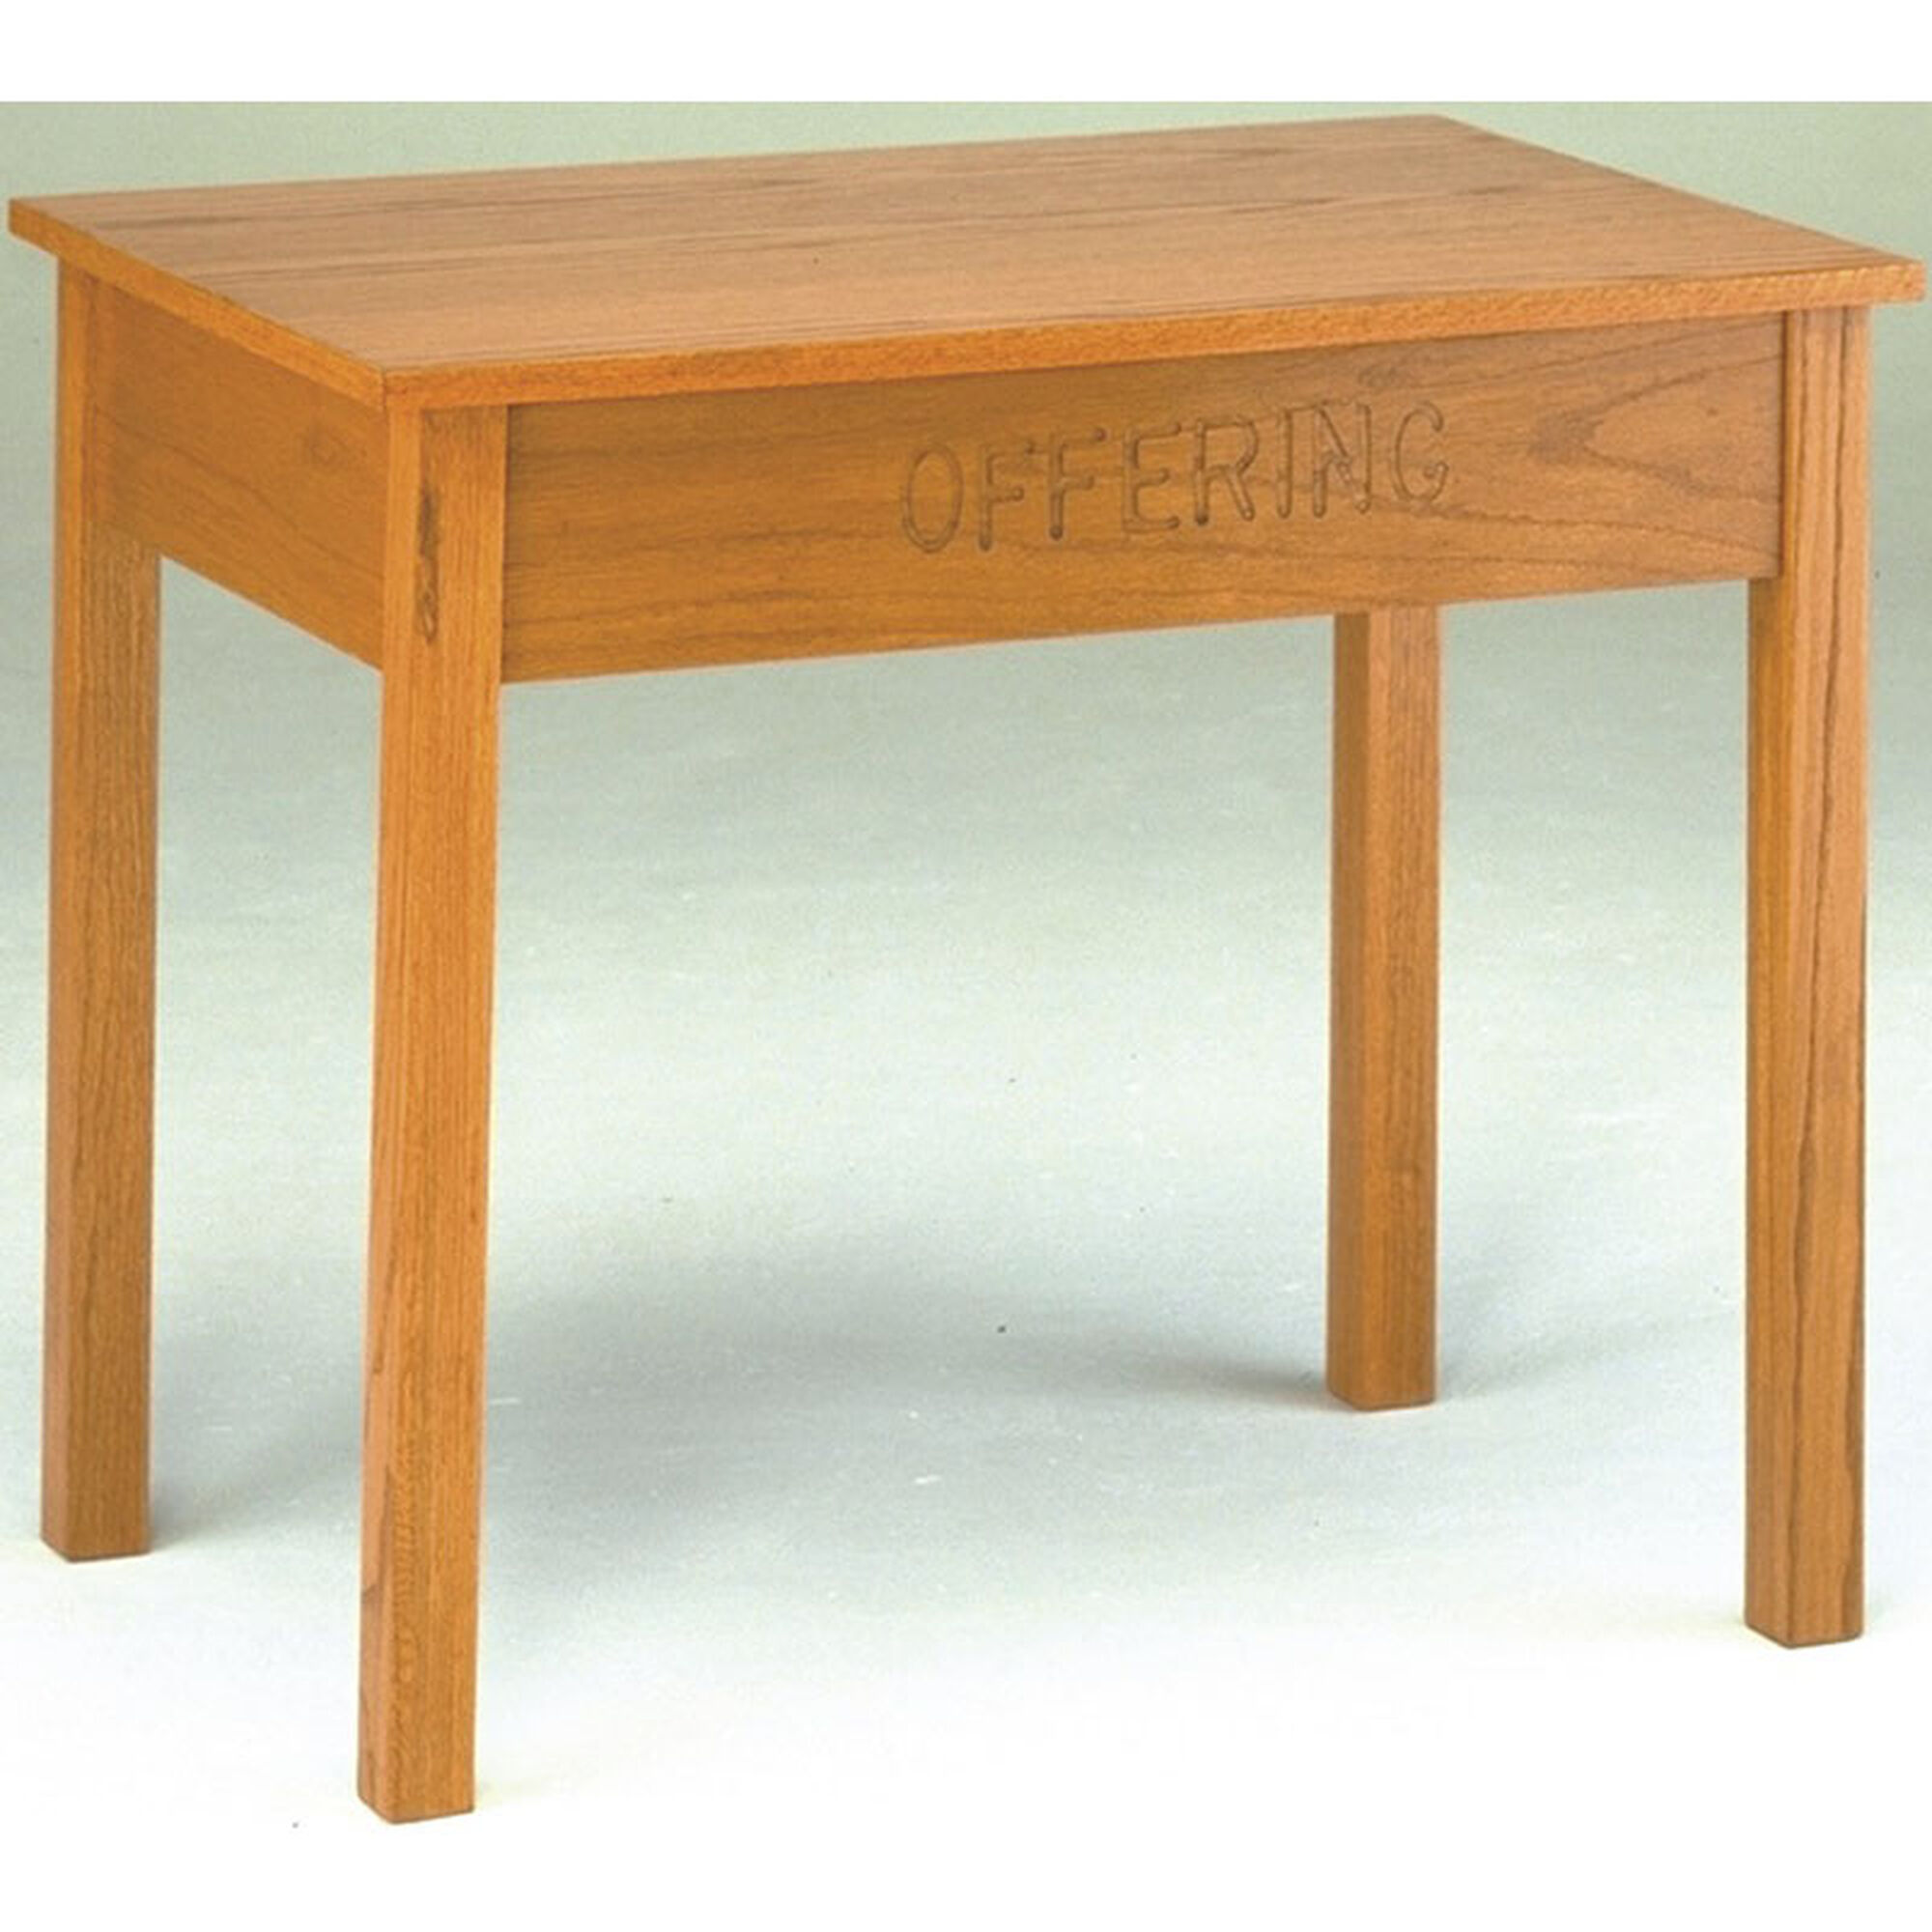 Our Stained Red Oak Offering Table with Storage Drawer is ...